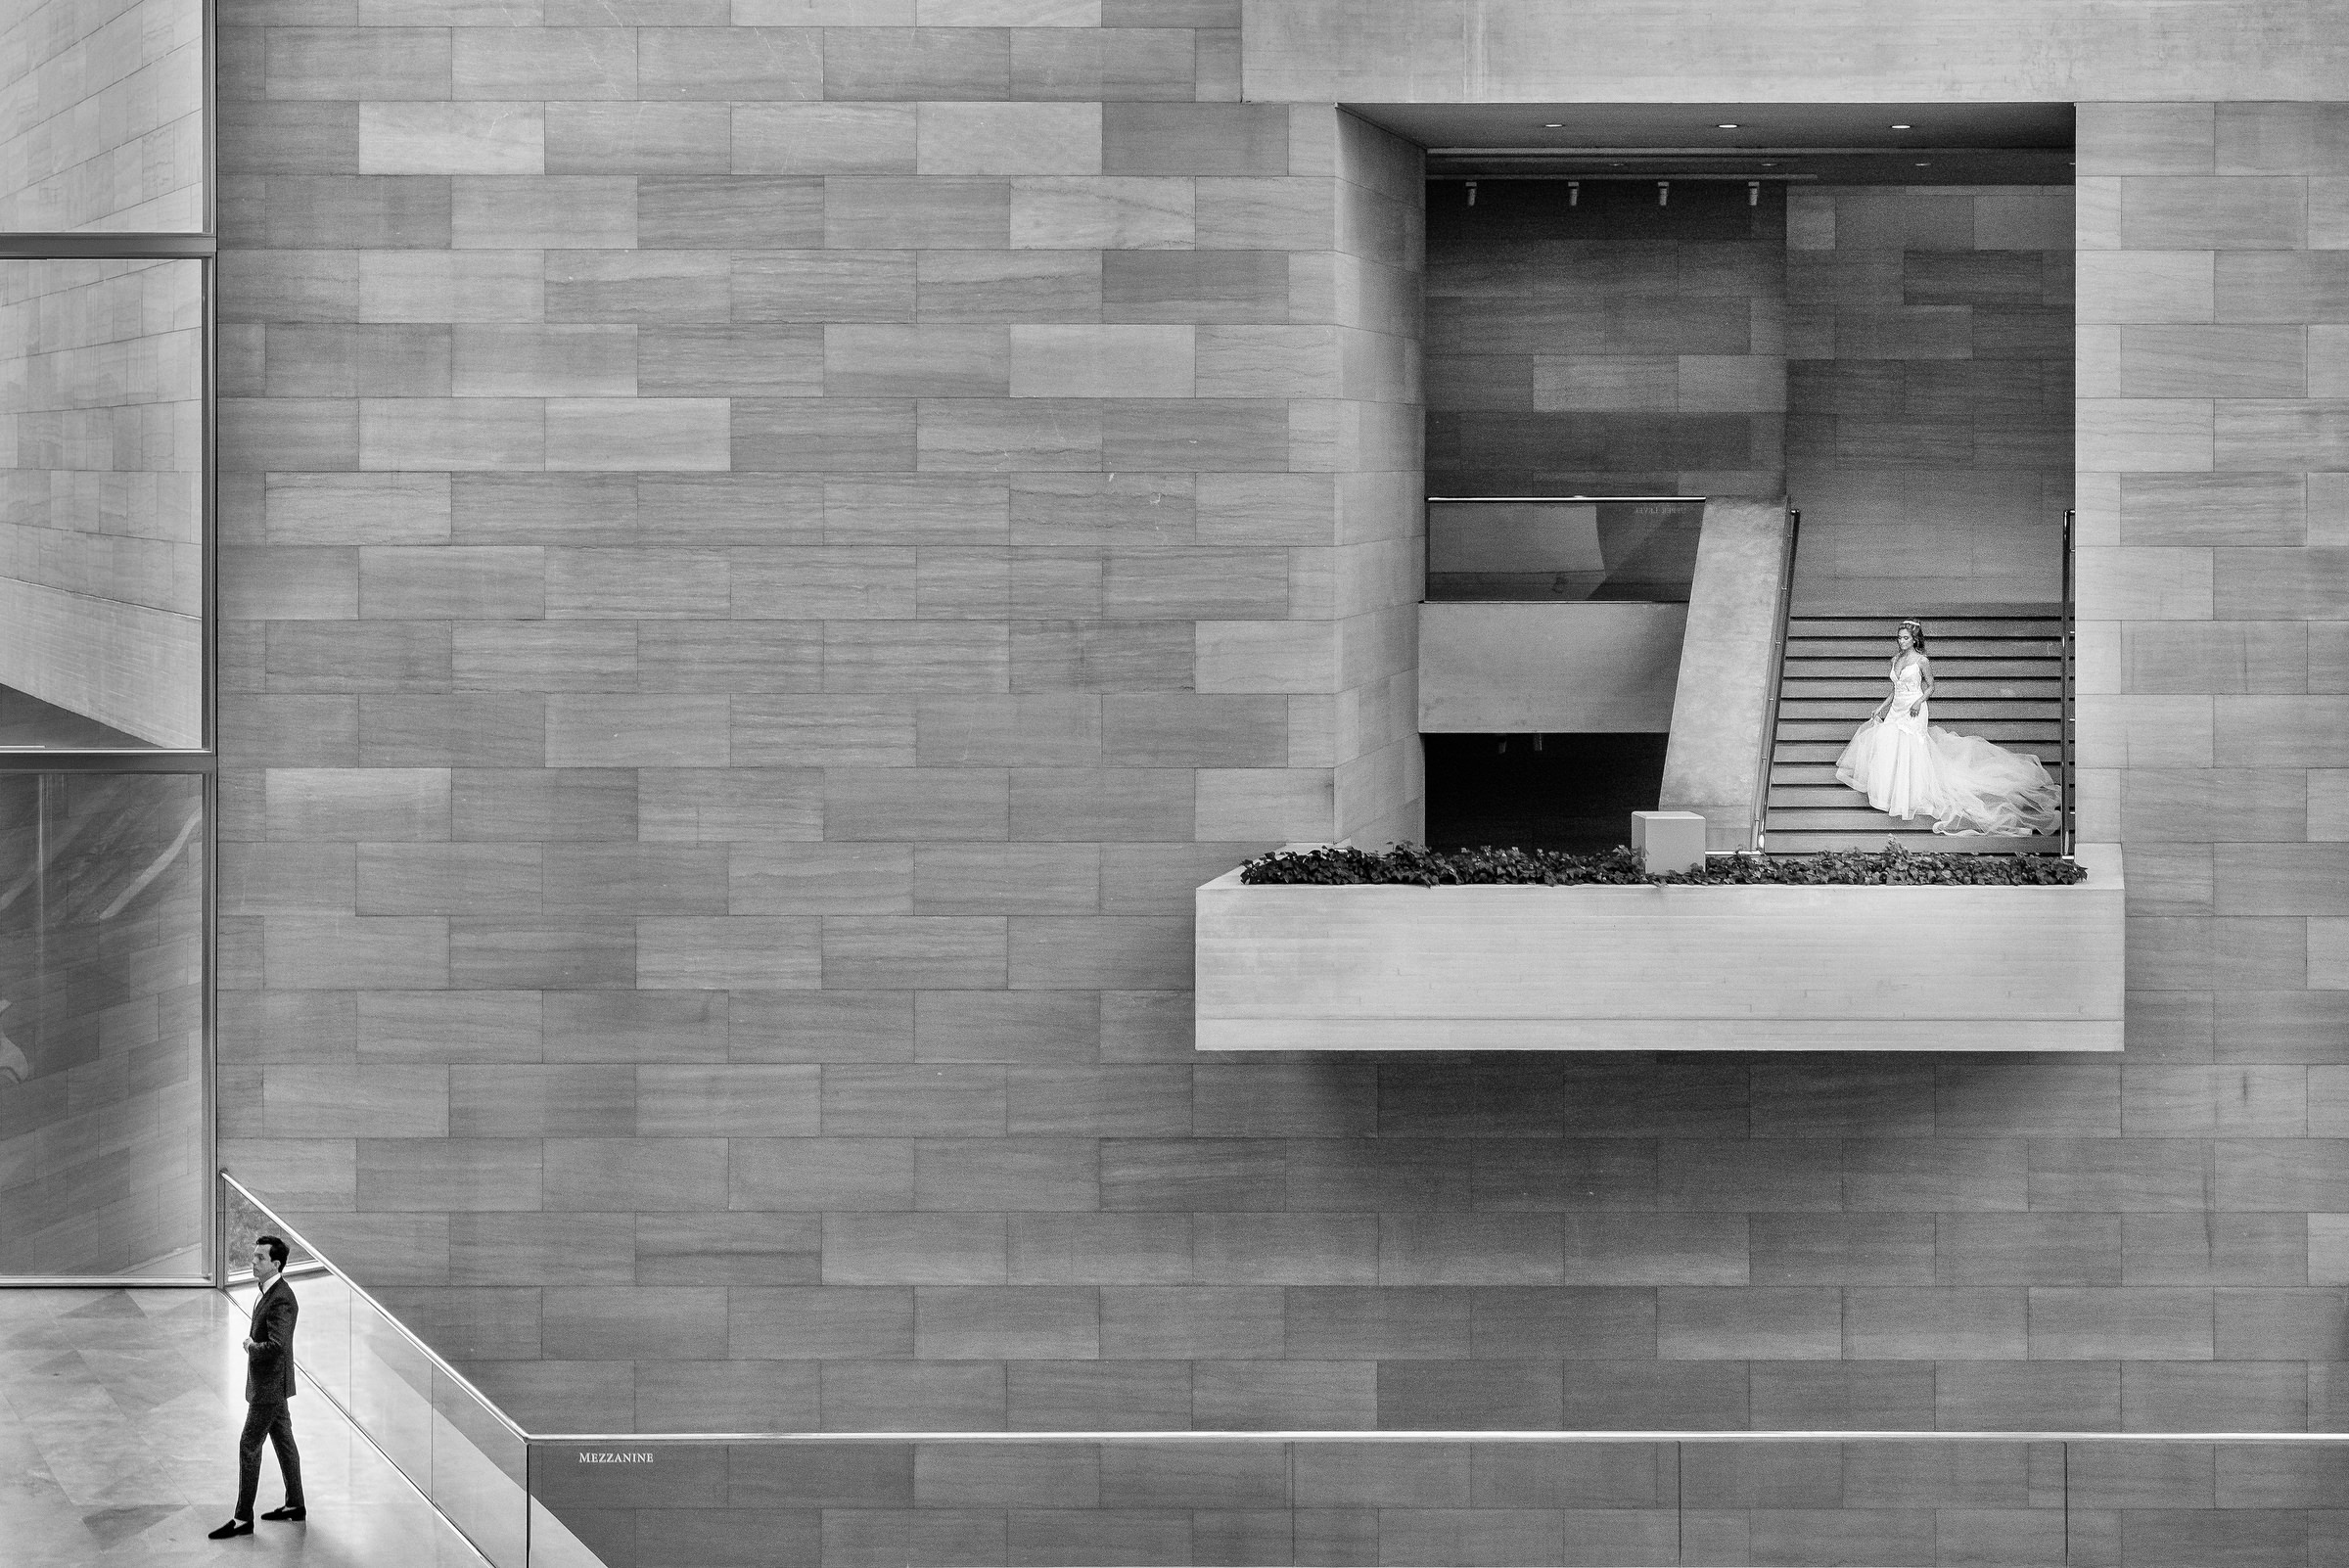 Groom and bride separately in modern architectural setting - photo by Kirth Bobb Photography